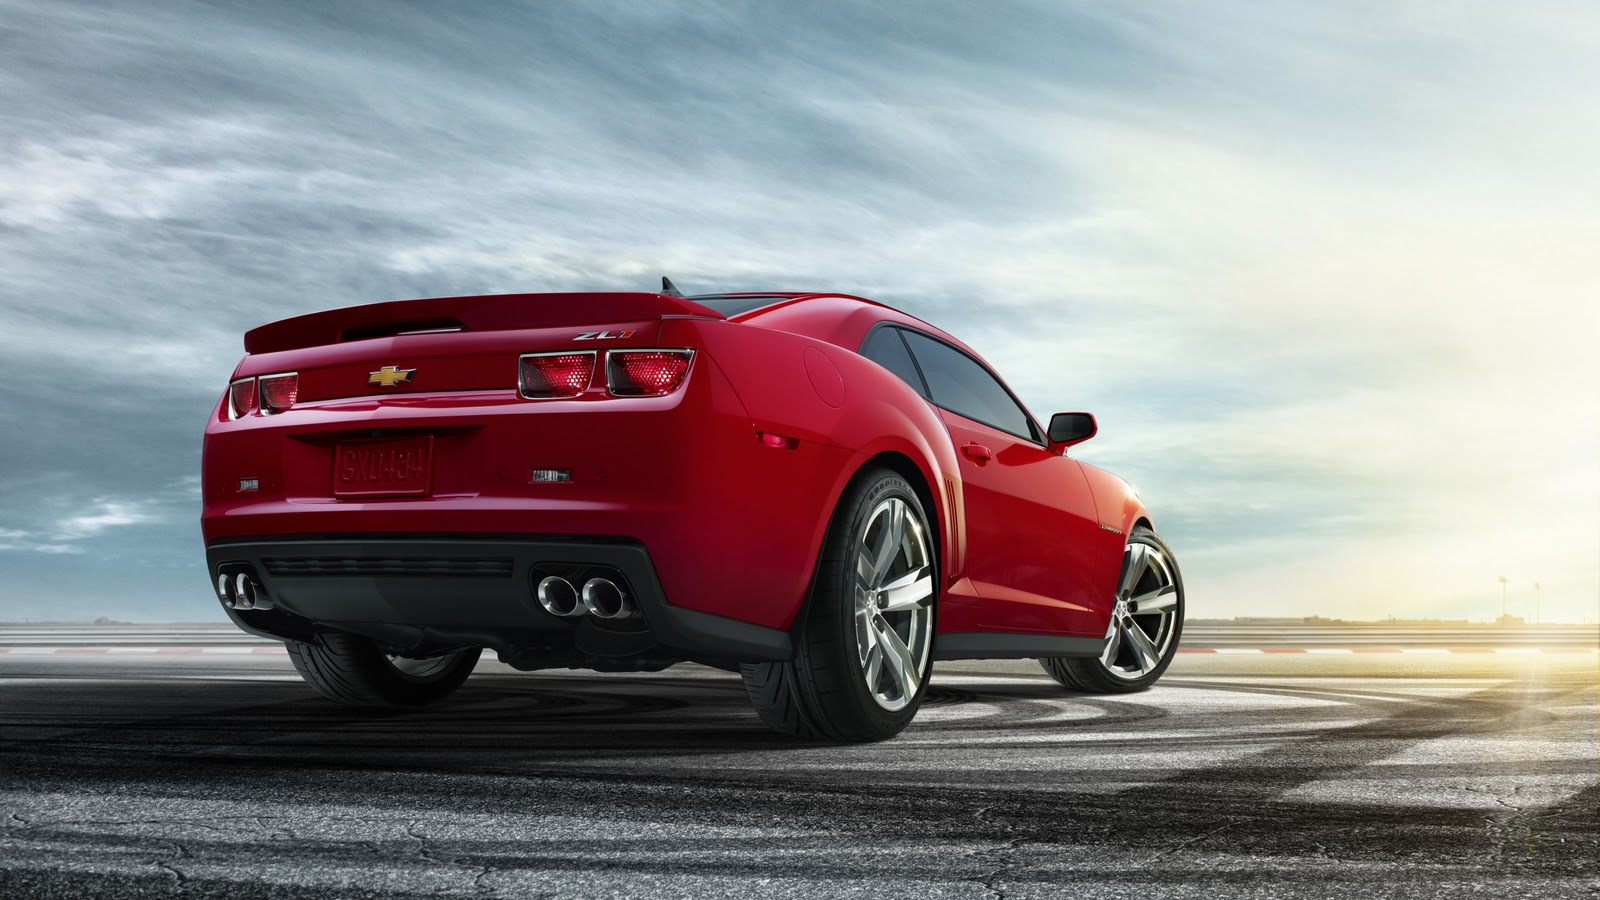 Central Wallpaper Chevrolet Camaro ZL1 Red HD Wallpaper 1600x900